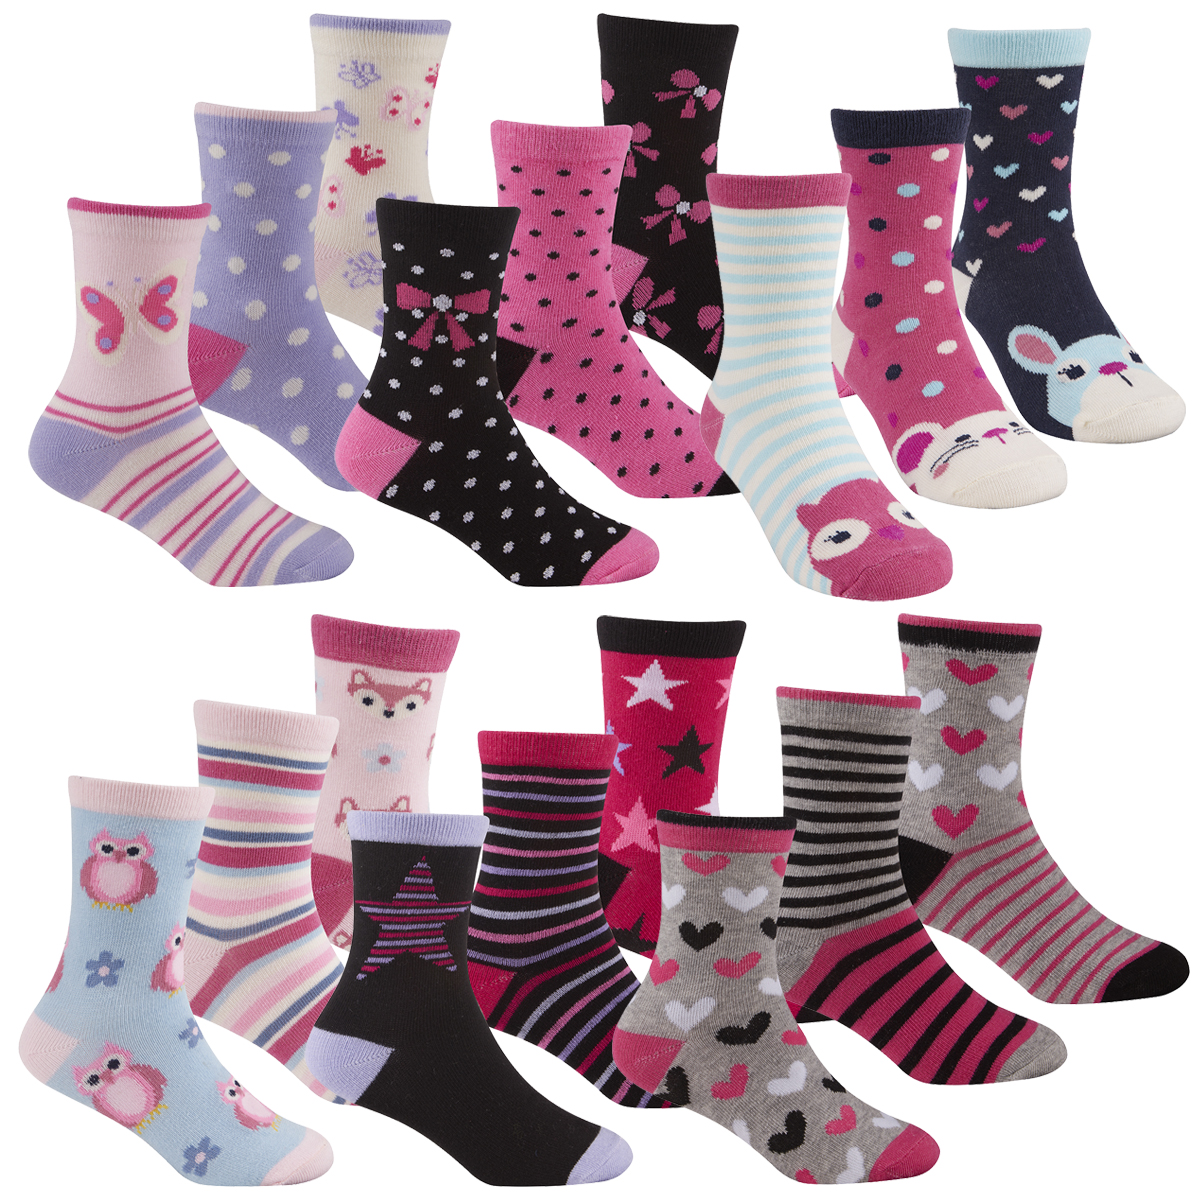 9 Pairs Cute Socks for Baby Girls Cotton Coming Pink Cotton Baby Girl Socks